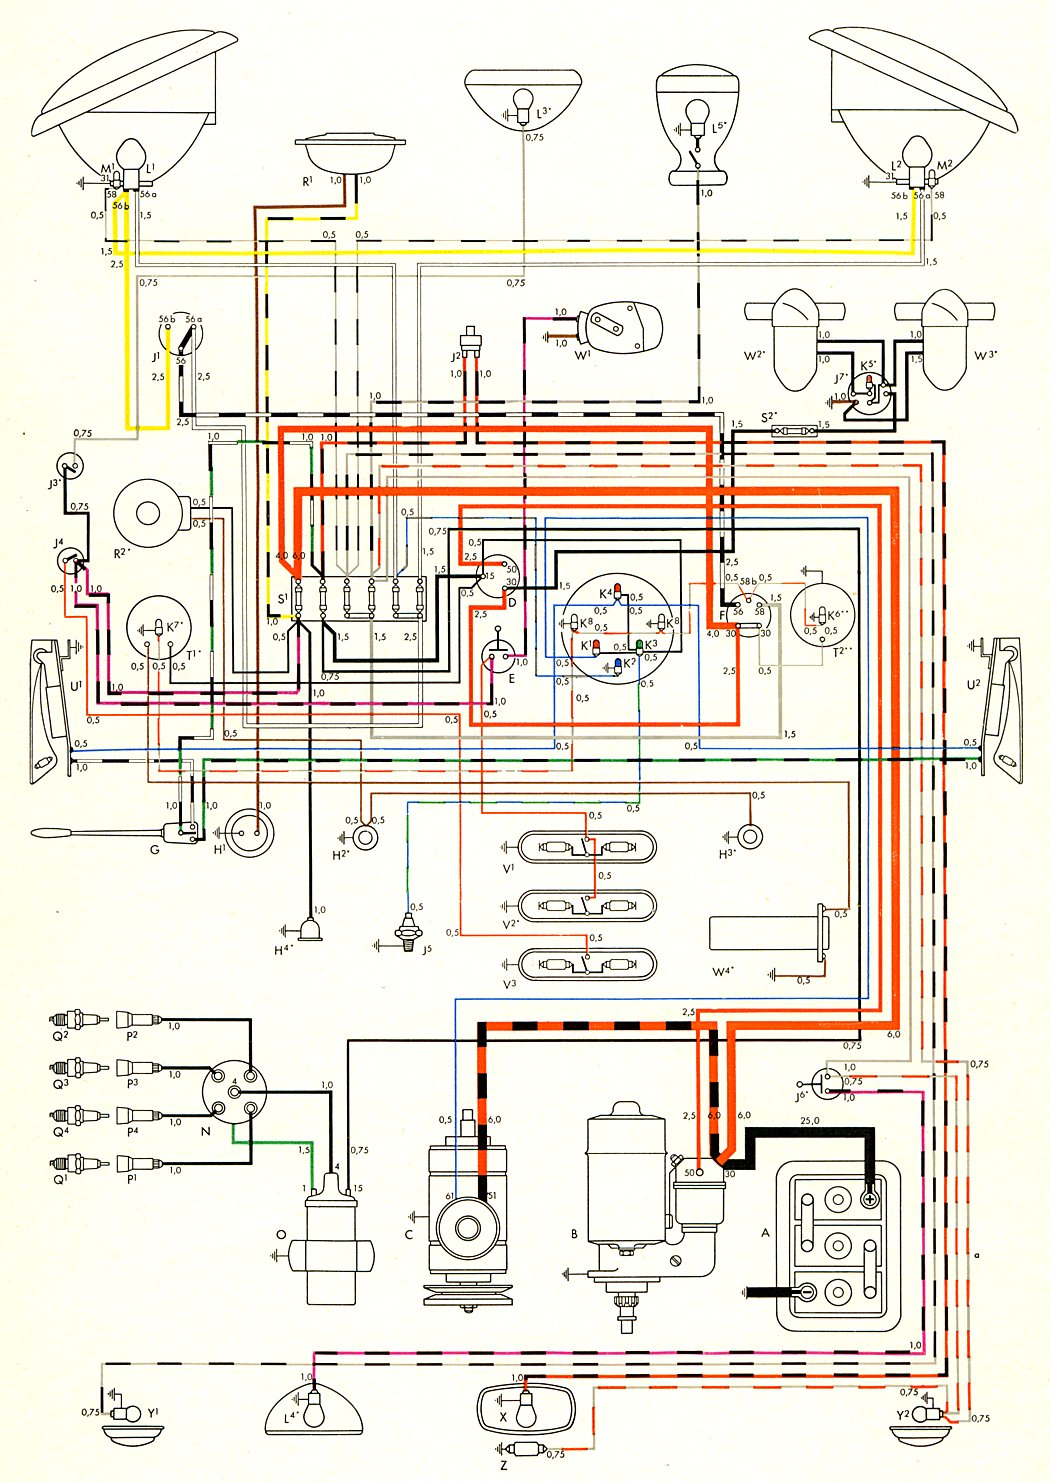 Electrical Diagram Vw Beetle Free Wiring For You Volkswagen Super 1971 The 1969